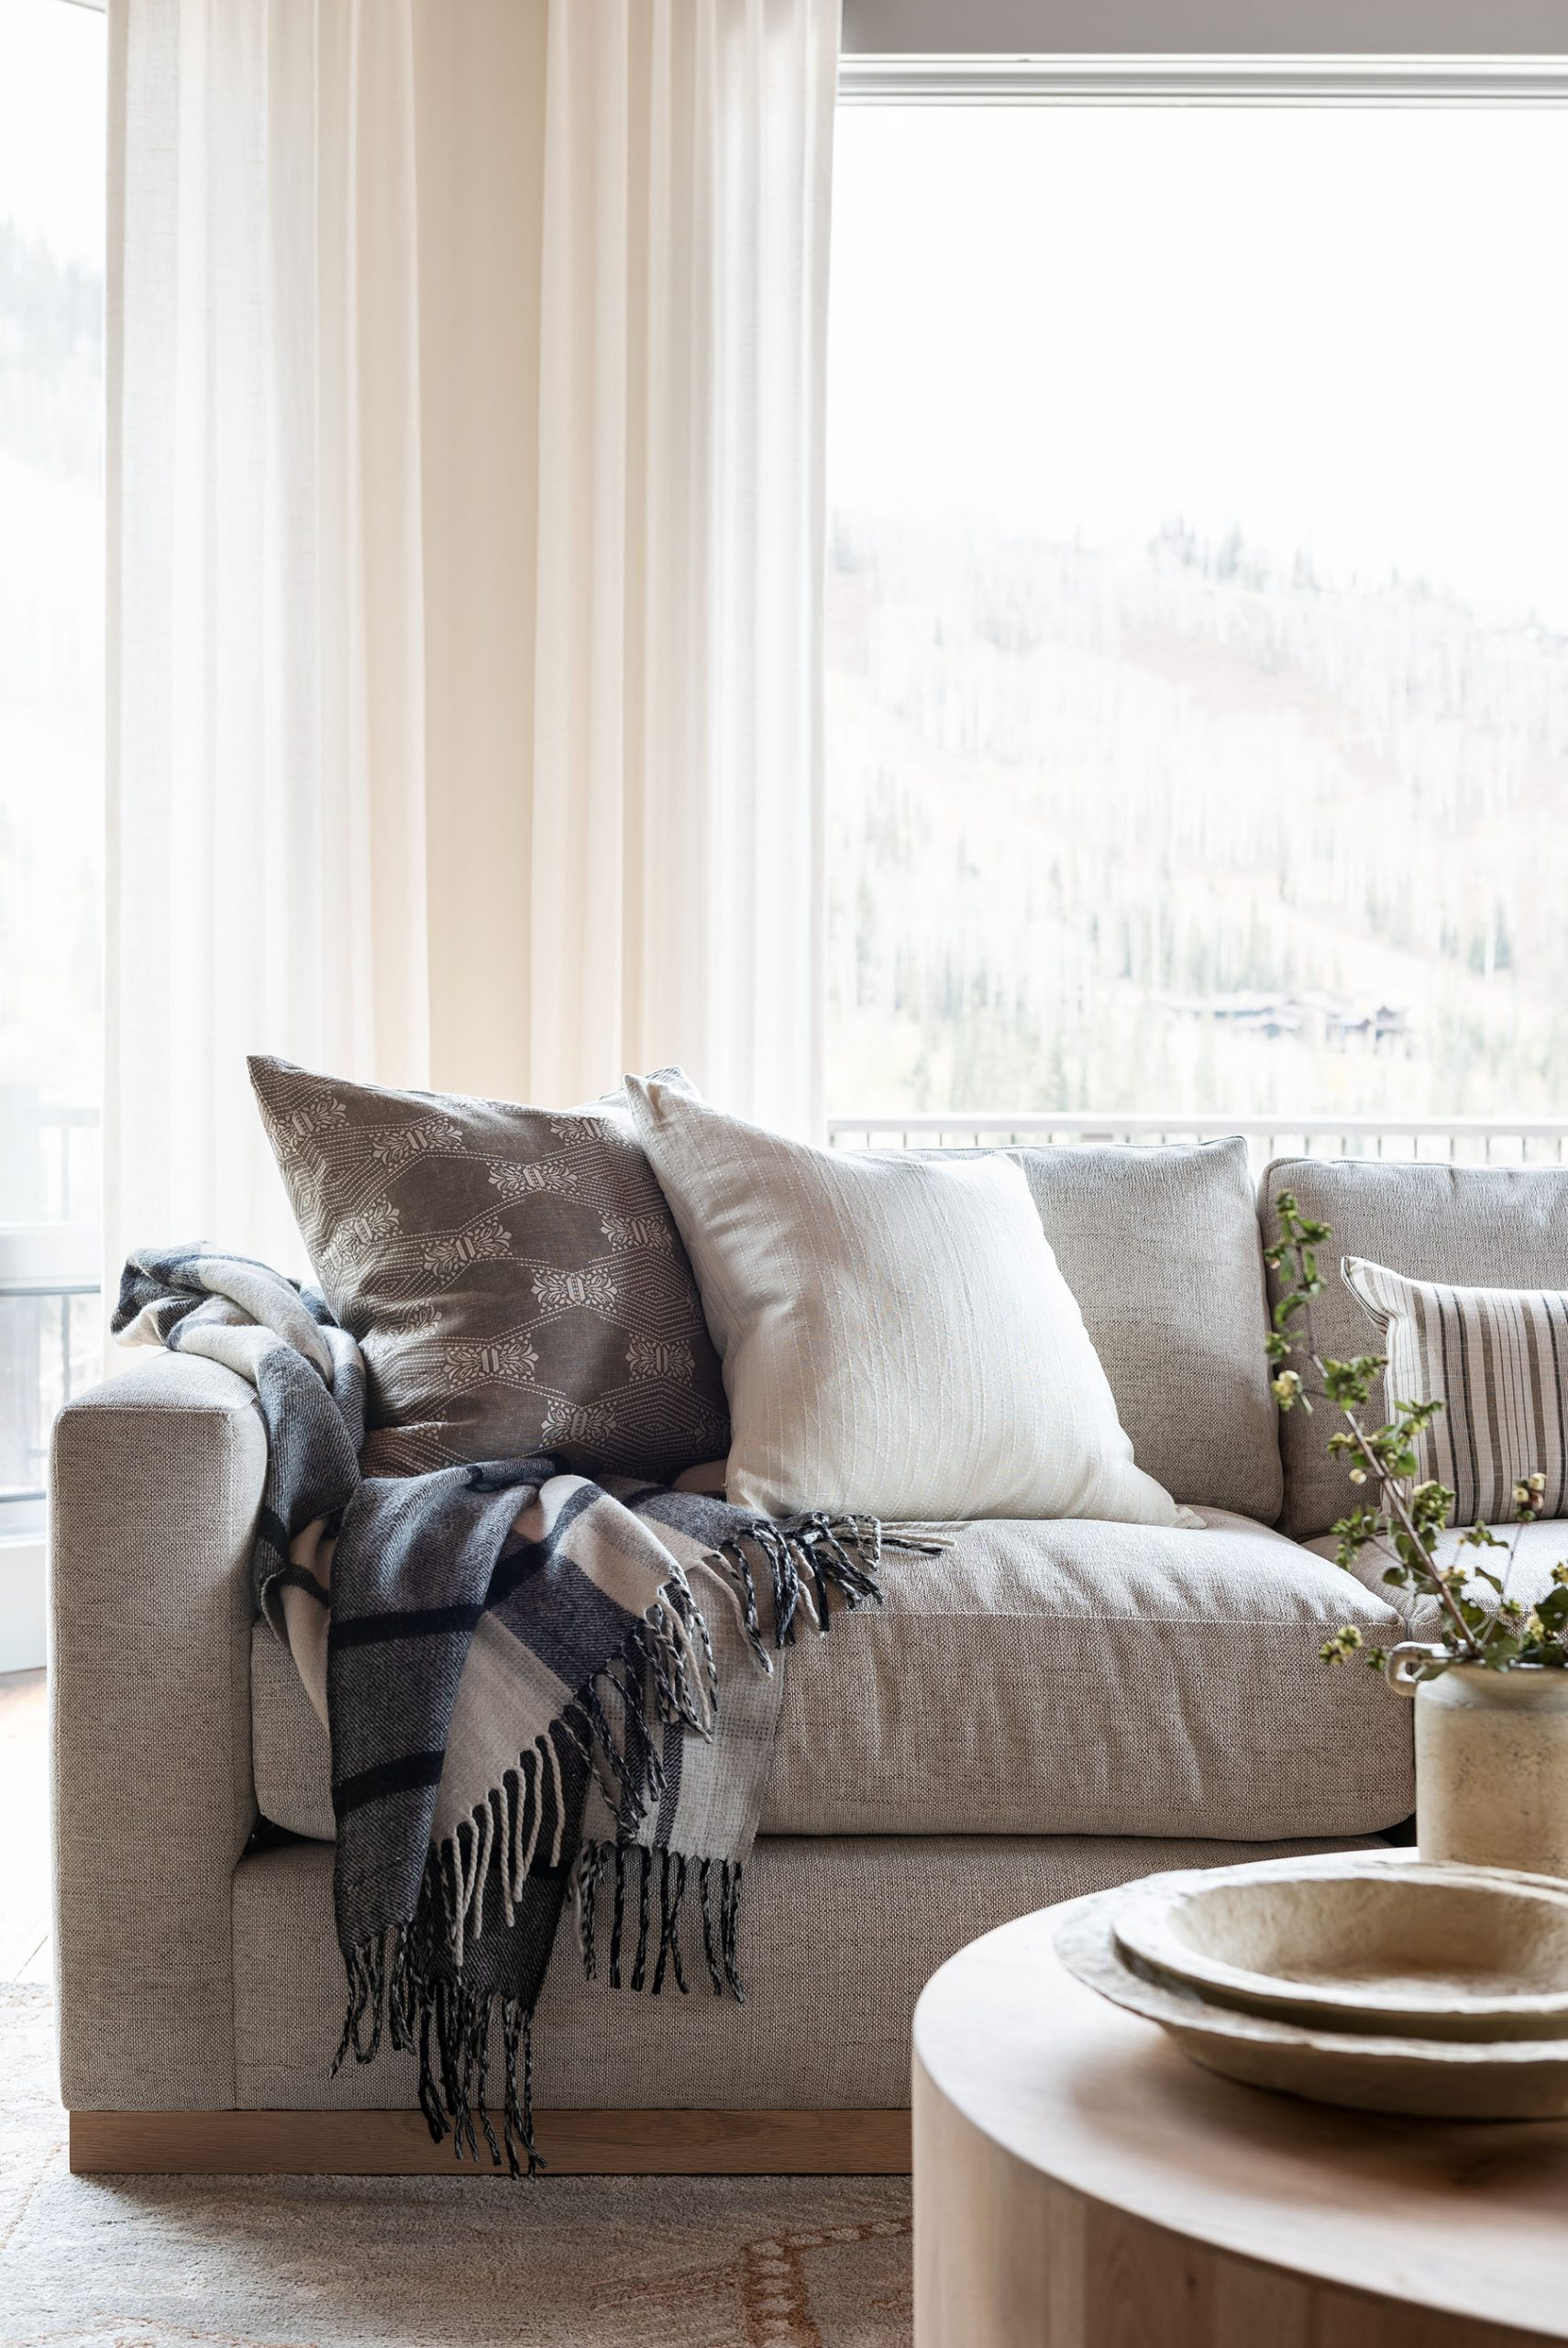 Tips for Creating a Winter Sanctuary